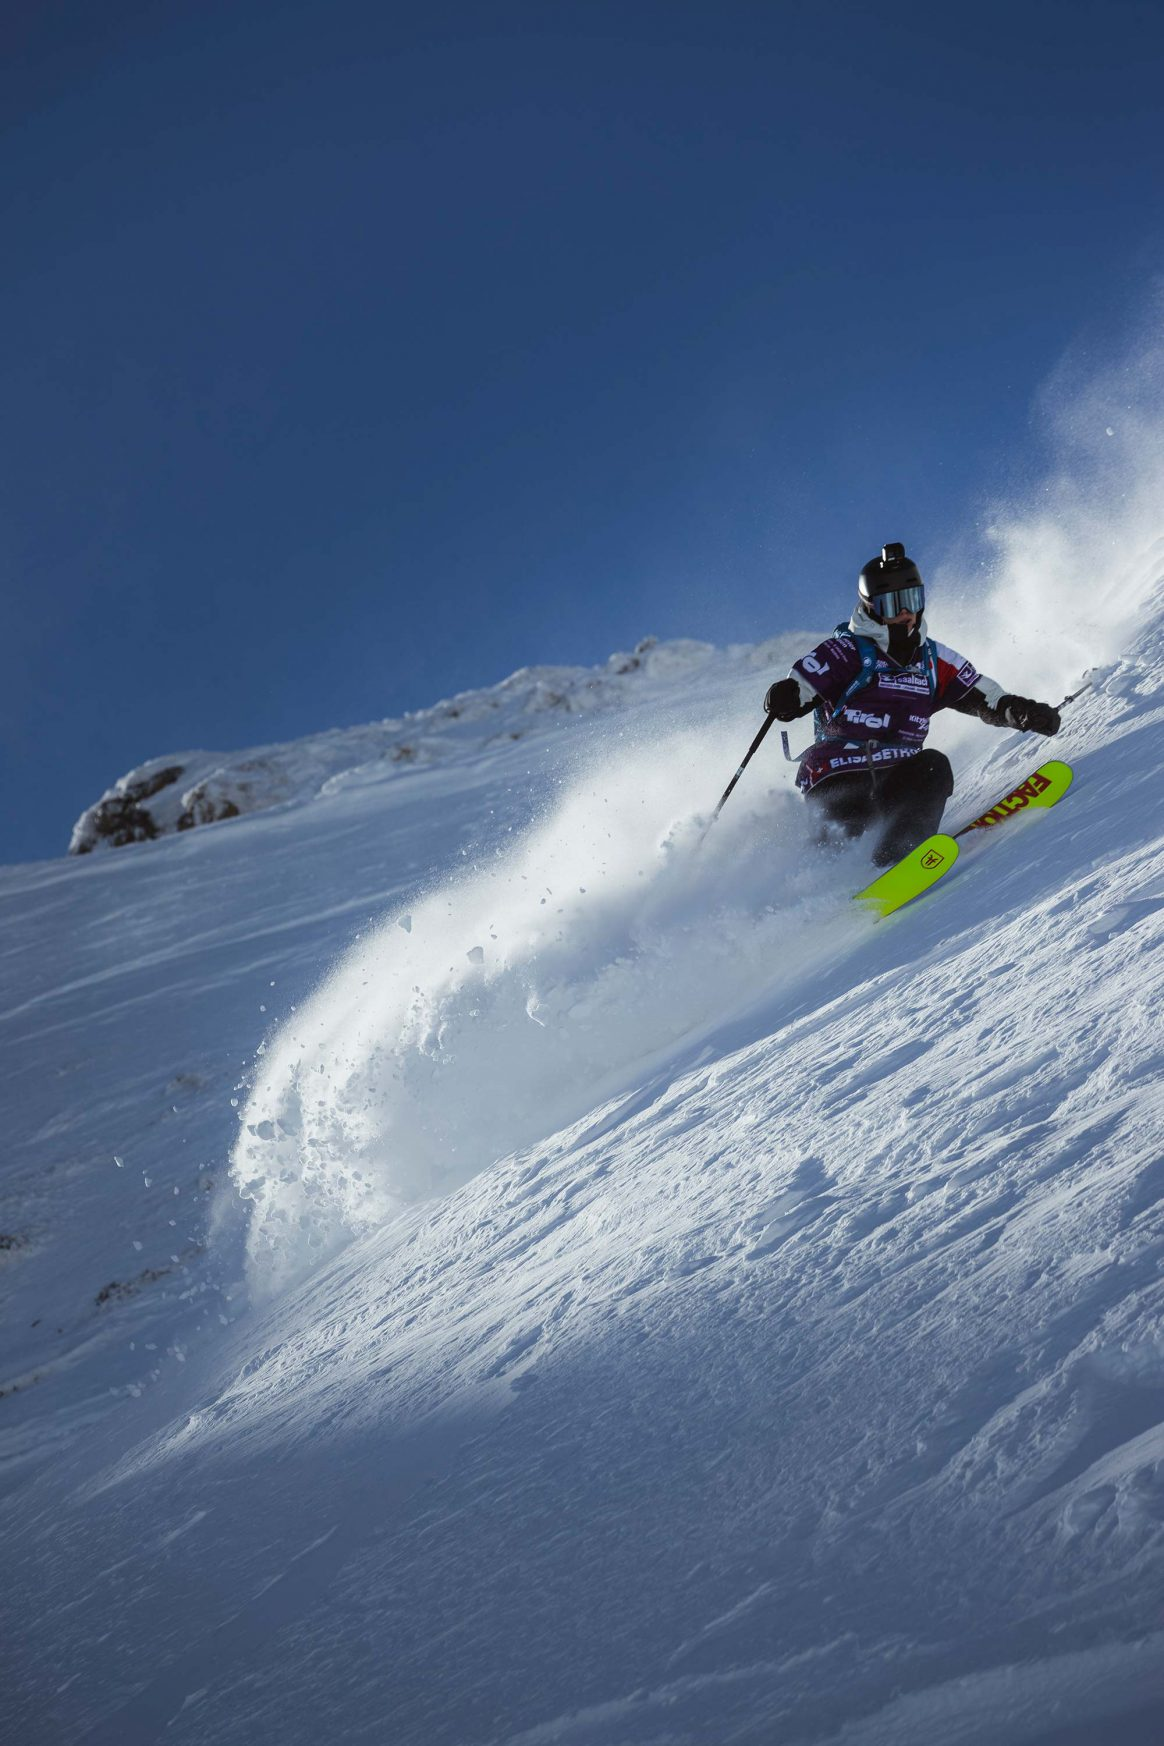 Elisabeth Gerritzen on her way to third place at the Freeride World Tour Stop in Fieberbrunn, Austria